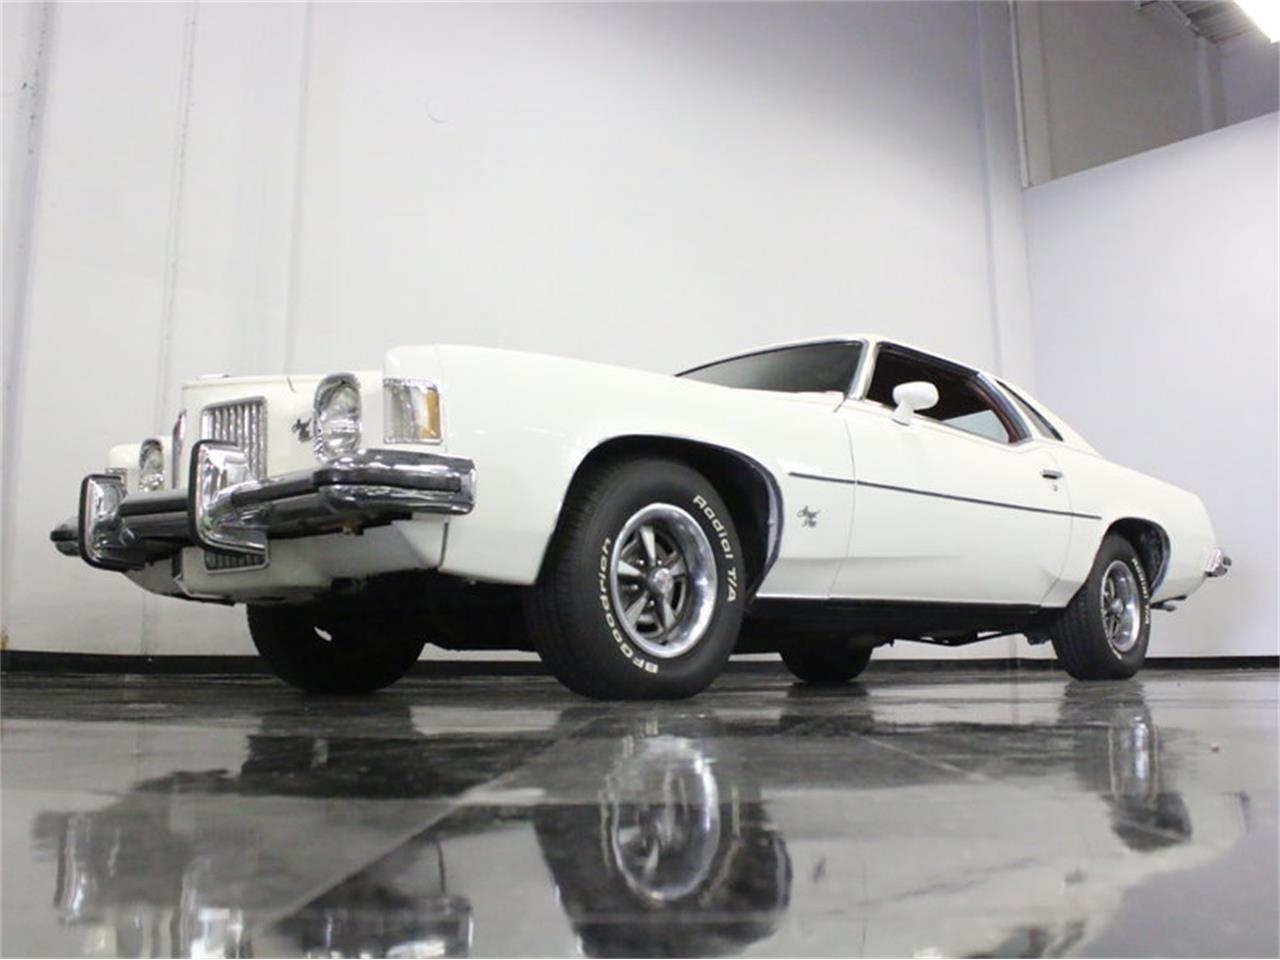 Large Picture of Classic '73 Pontiac Grand Prix Model J - $13,995.00 Offered by Streetside Classics - Dallas / Fort Worth - L2N9